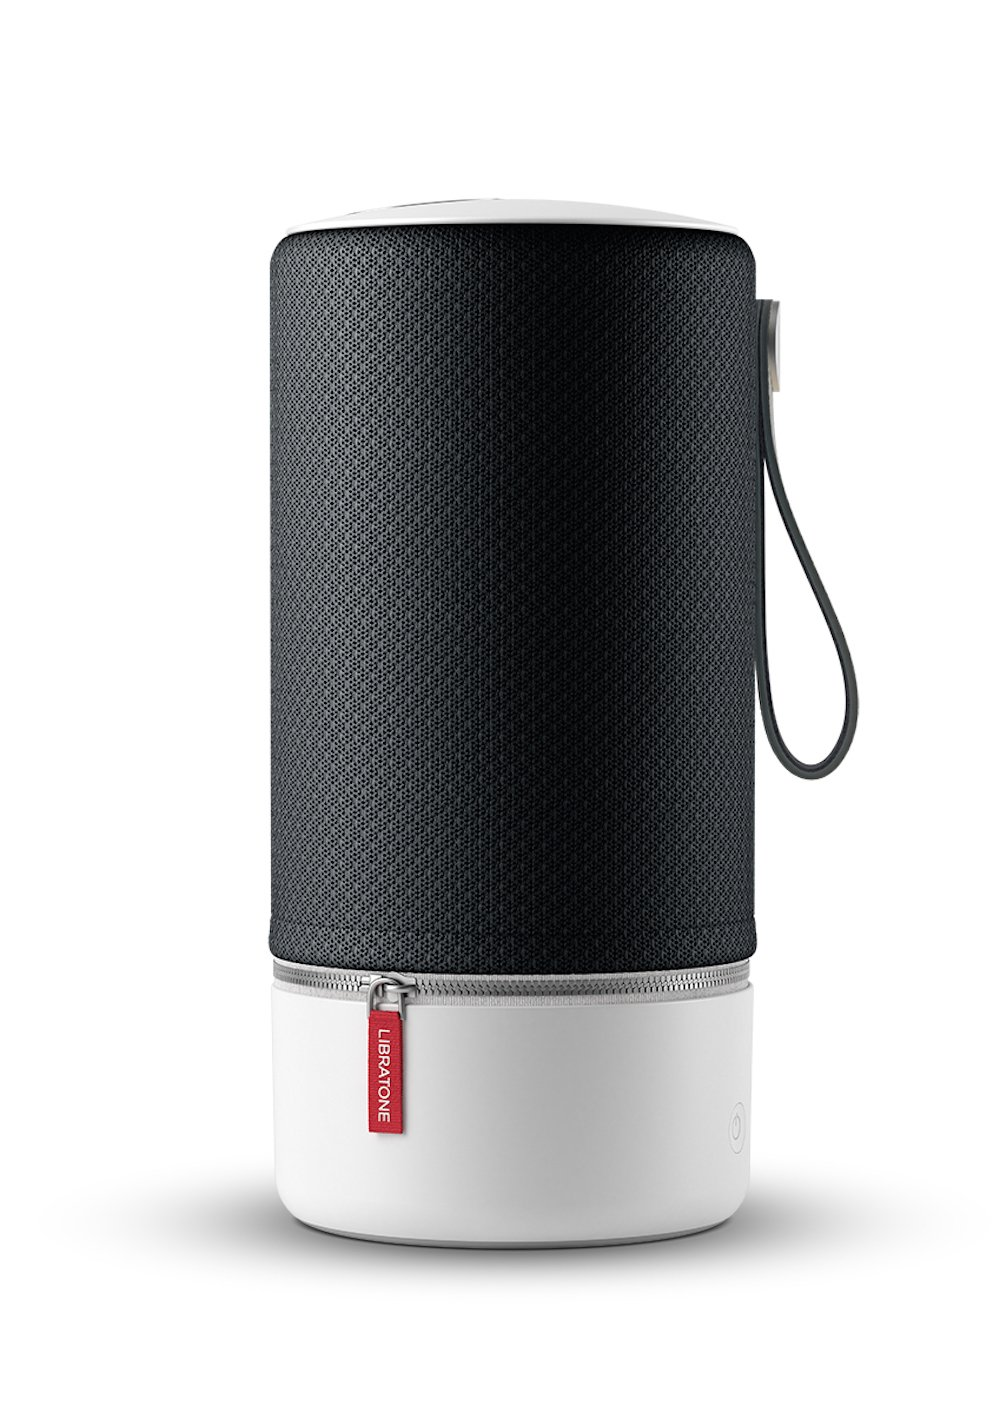 Libratone ZIPP Portable WiFi + Bluetooth Wireless Speaker – works with Alexa (Graphite Grey) by Libratone